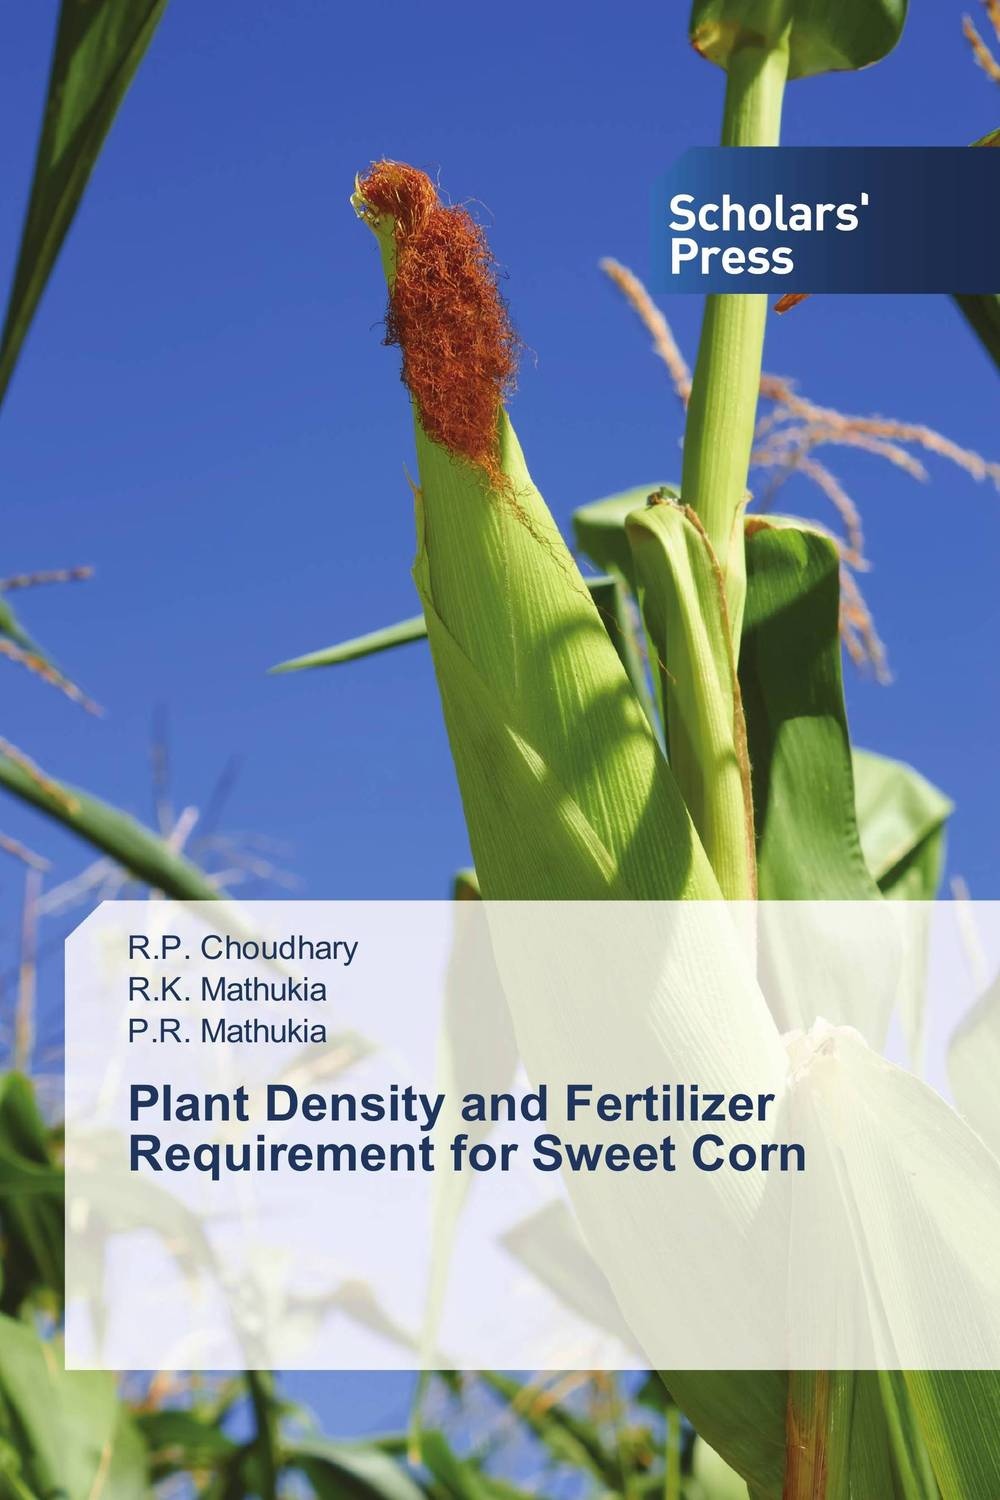 Plant Density and Fertilizer Requirement for Sweet Corn katy perry copenhagen